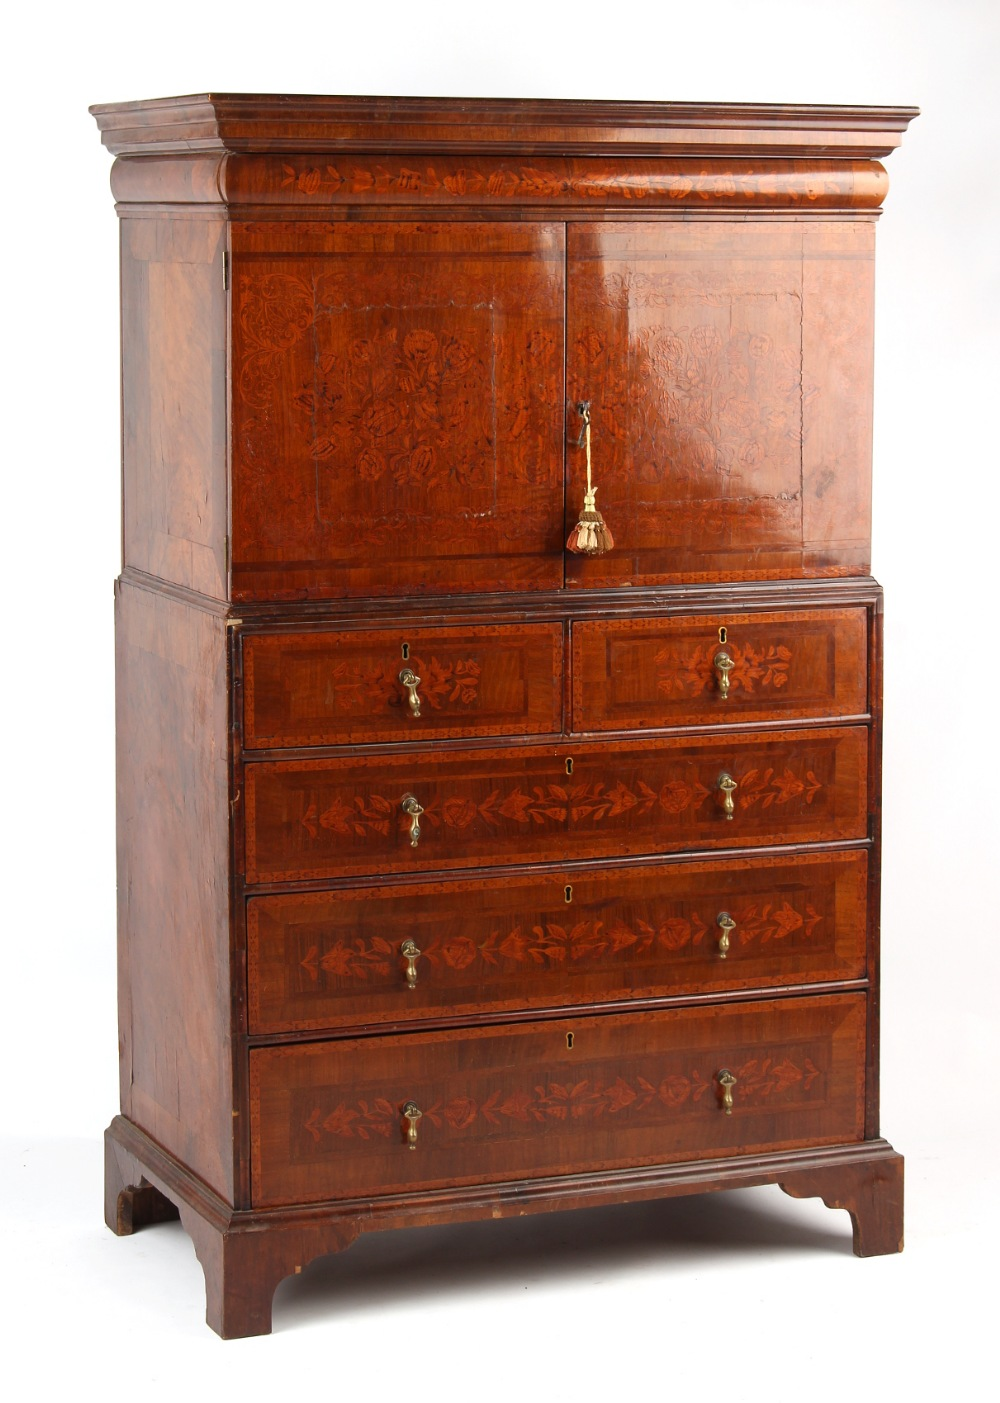 Property of a deceased estate - a walnut & floral marquetry inlaid two part cabinet on stand,